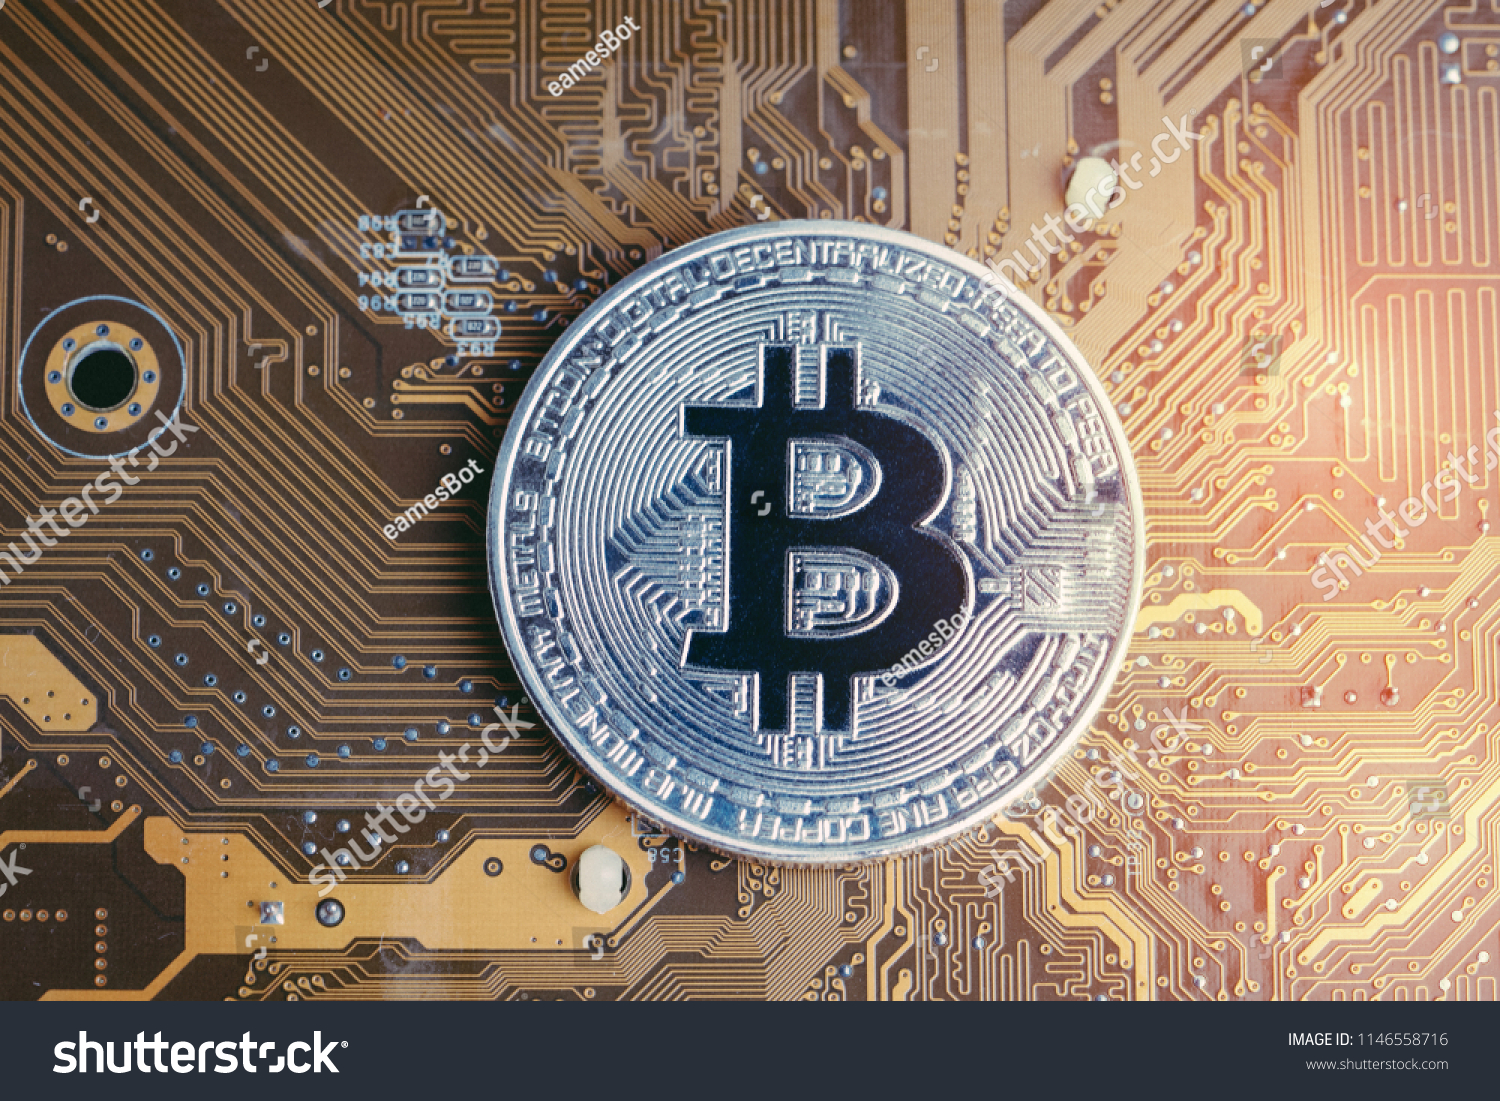 Crypto Currency Bitcoin Digital Money Concept Stock Photo Edit Now Circuitry Of An Electronic Calculator Royalty Free Photography Shiny Golden Physical Coin On Technology And Electronics